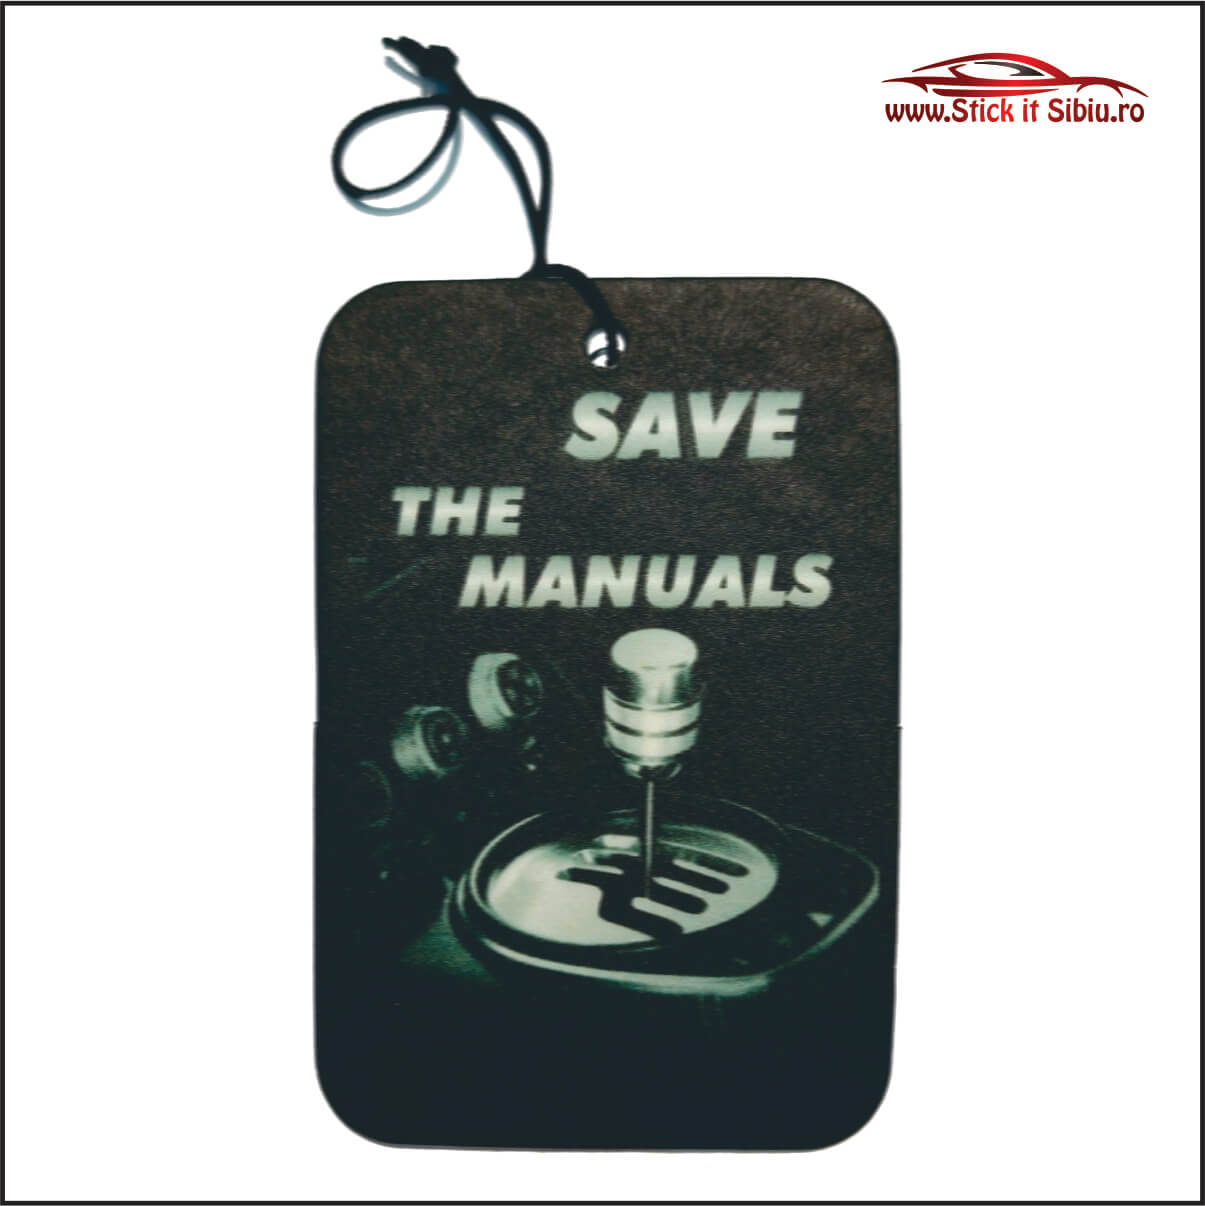 Save the manuals - Stickere Auto - Camuflaje - Odorizante - Brelocuri auto! Nou! In Romania!